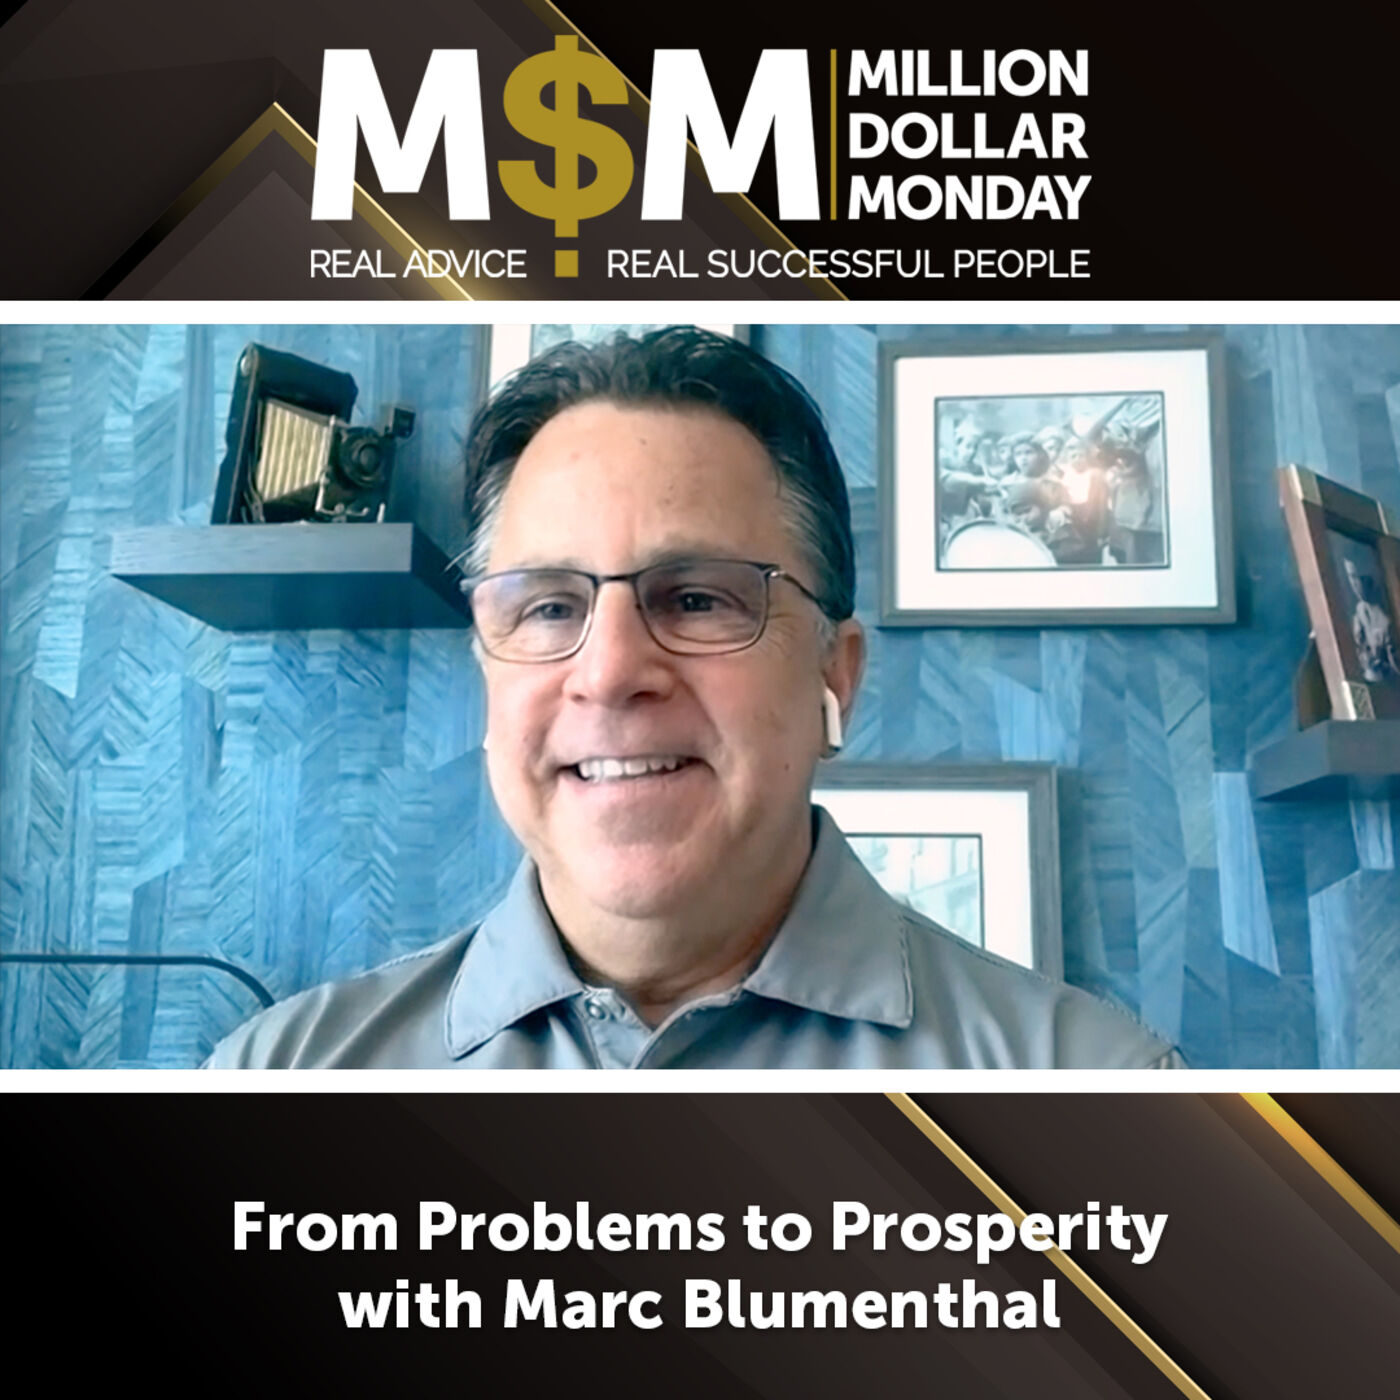 From Problems to Prosperity with Marc Blumenthal